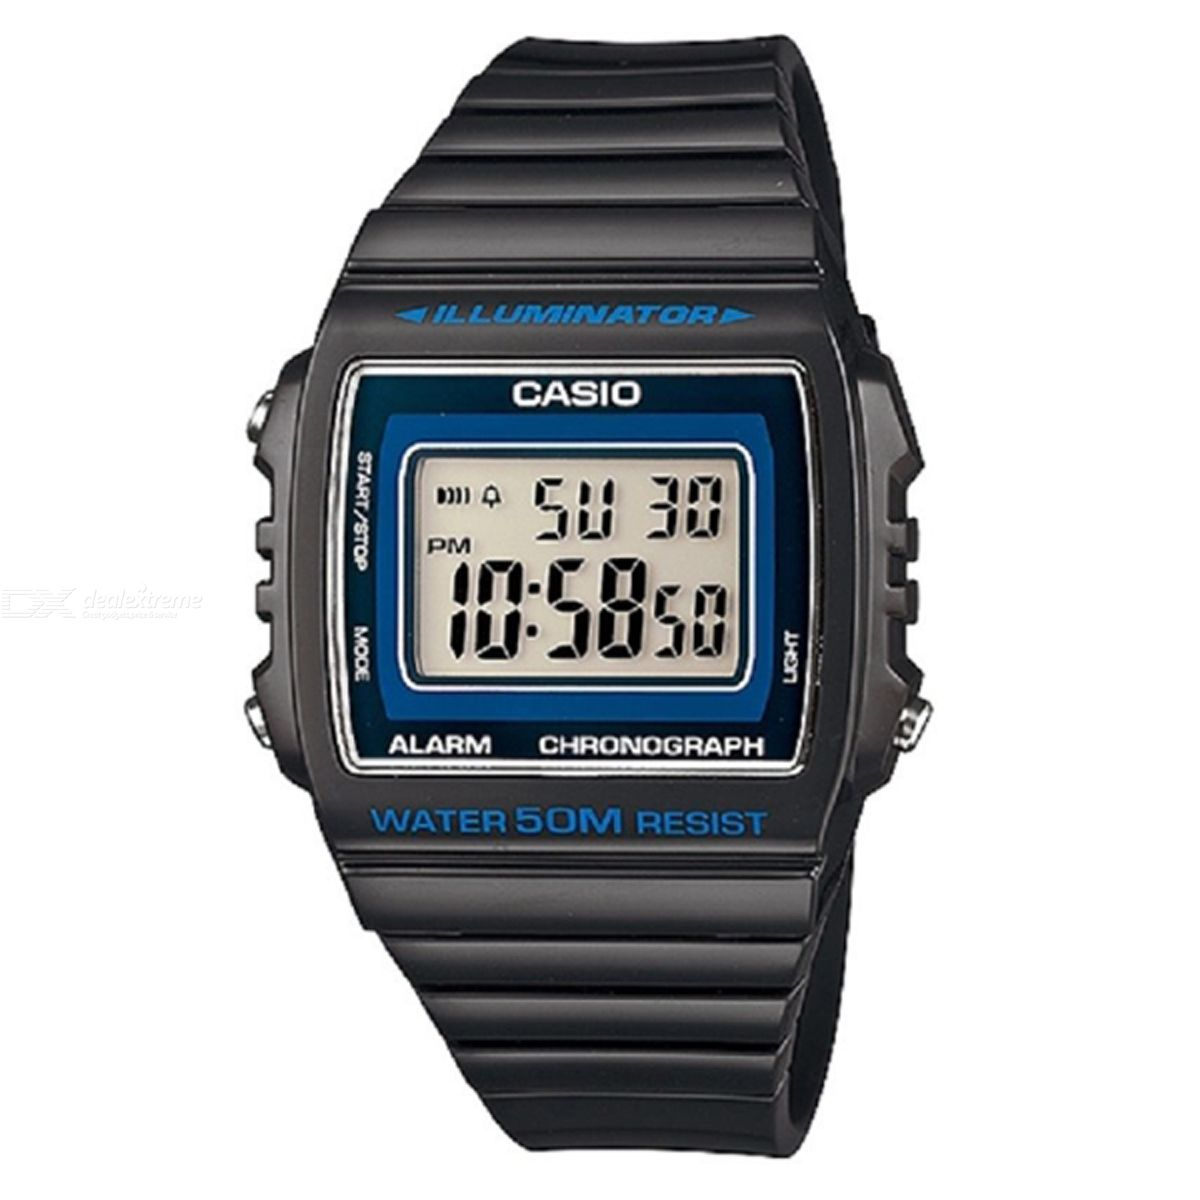 CASIO W-215H-8AVDF Men's Wristwatch - Black + Blue (Without Box)